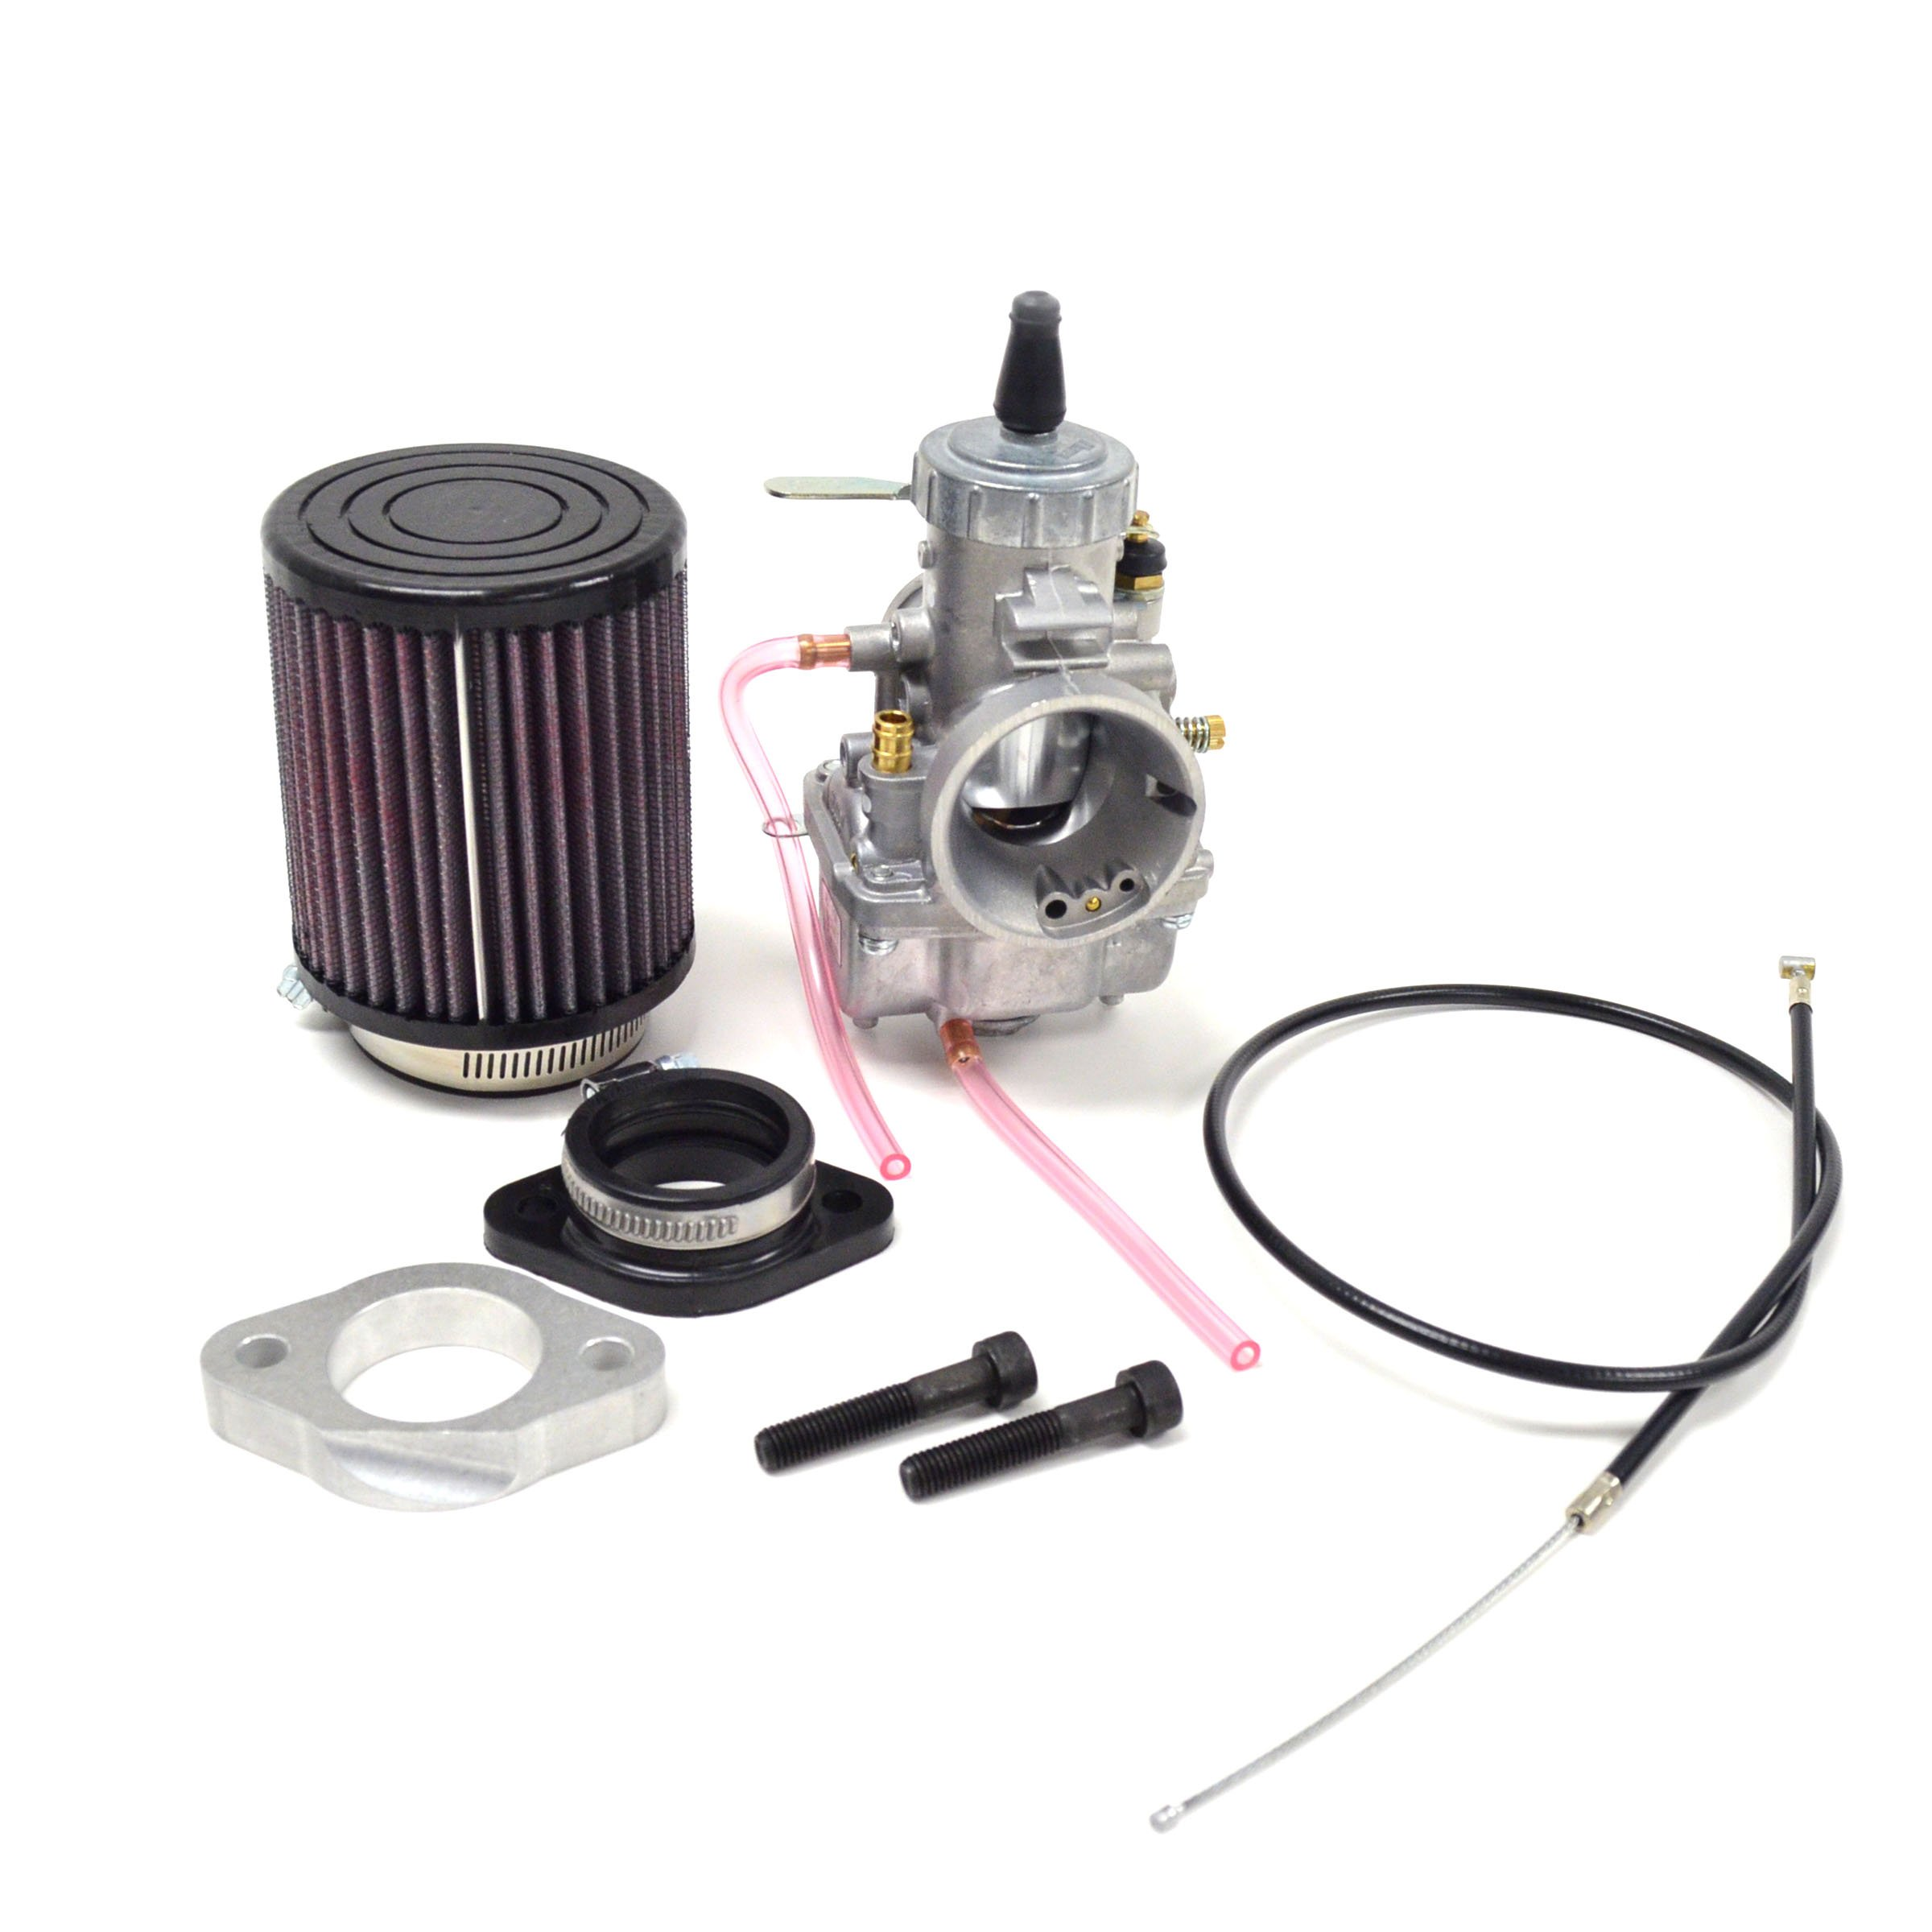 Royal Enfield 500 34mm VM34 Complete Mikuni Carburetor Kit 2000-Later NCS237 by Niche Cycle Supply